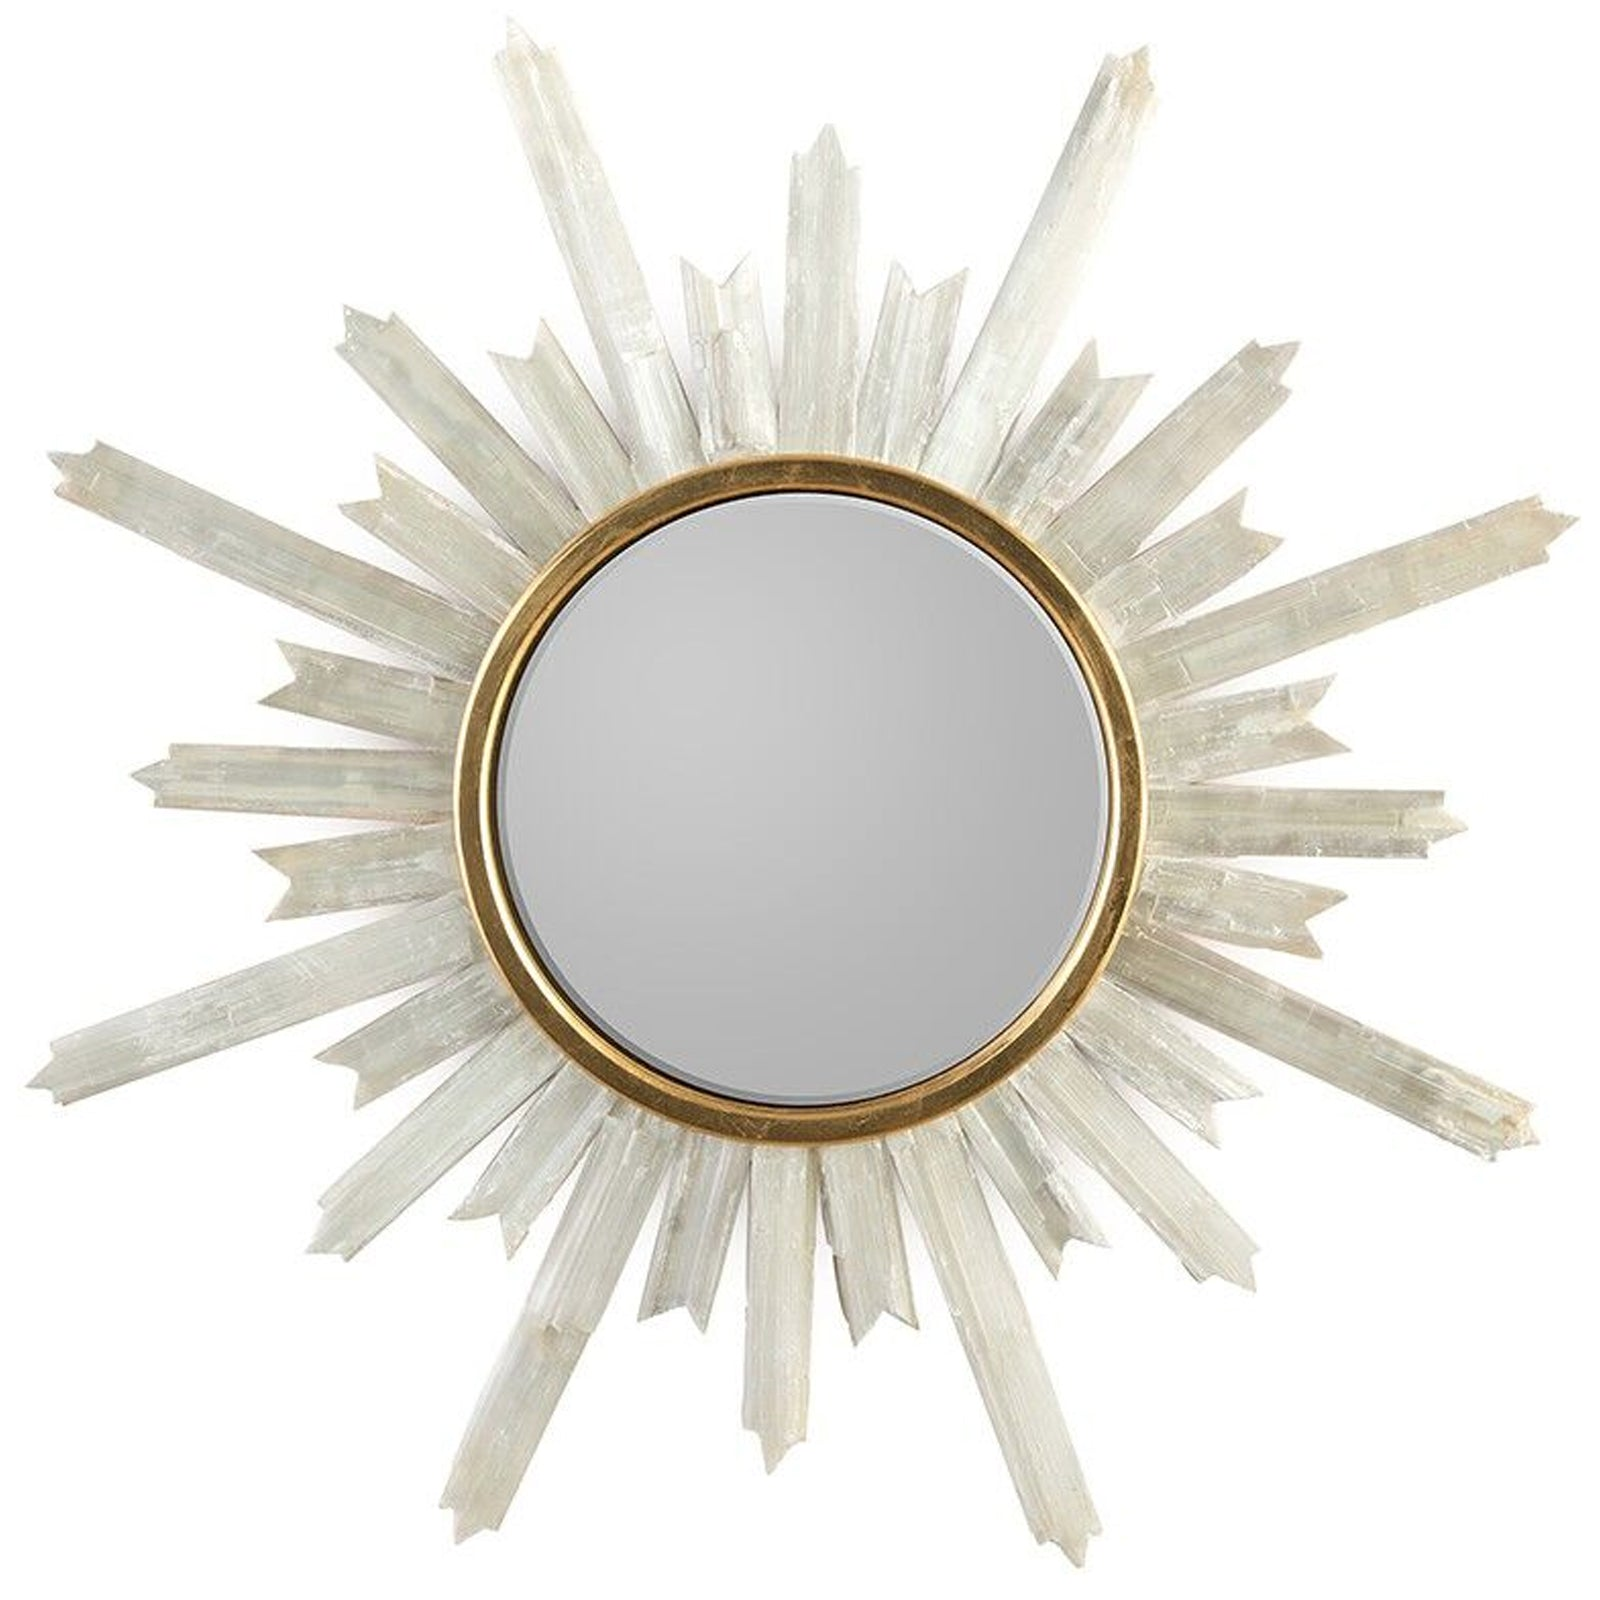 Selenite Starburst Mirror - 9 Best Statement Wall Mirrors To Hang In Your Home - LuxDeco.com